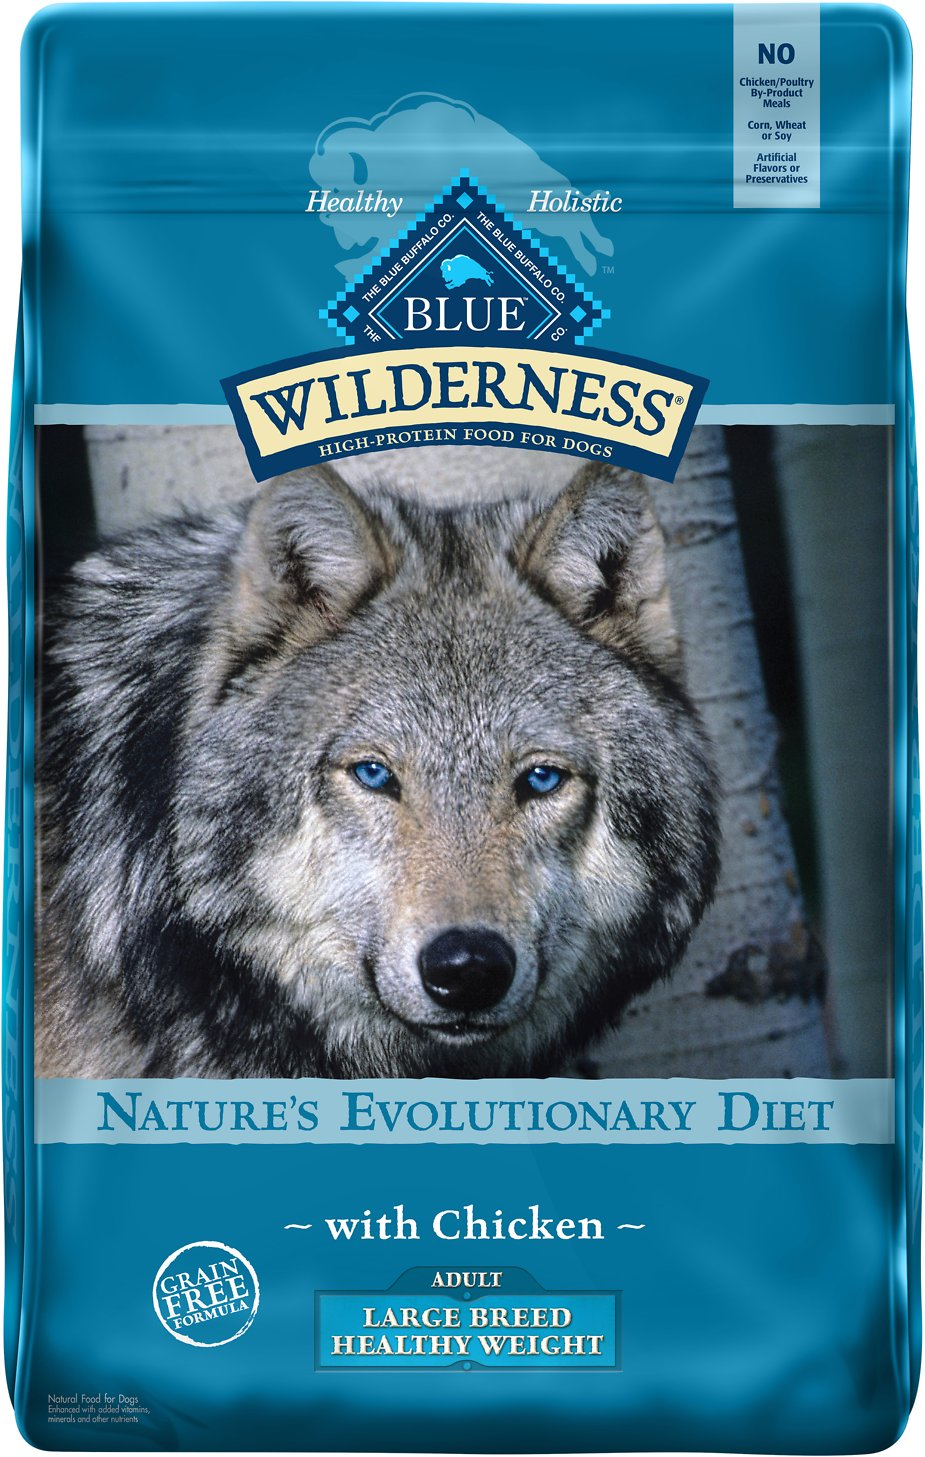 Blue Buffalo Wilderness Dog Food for Liver Disease